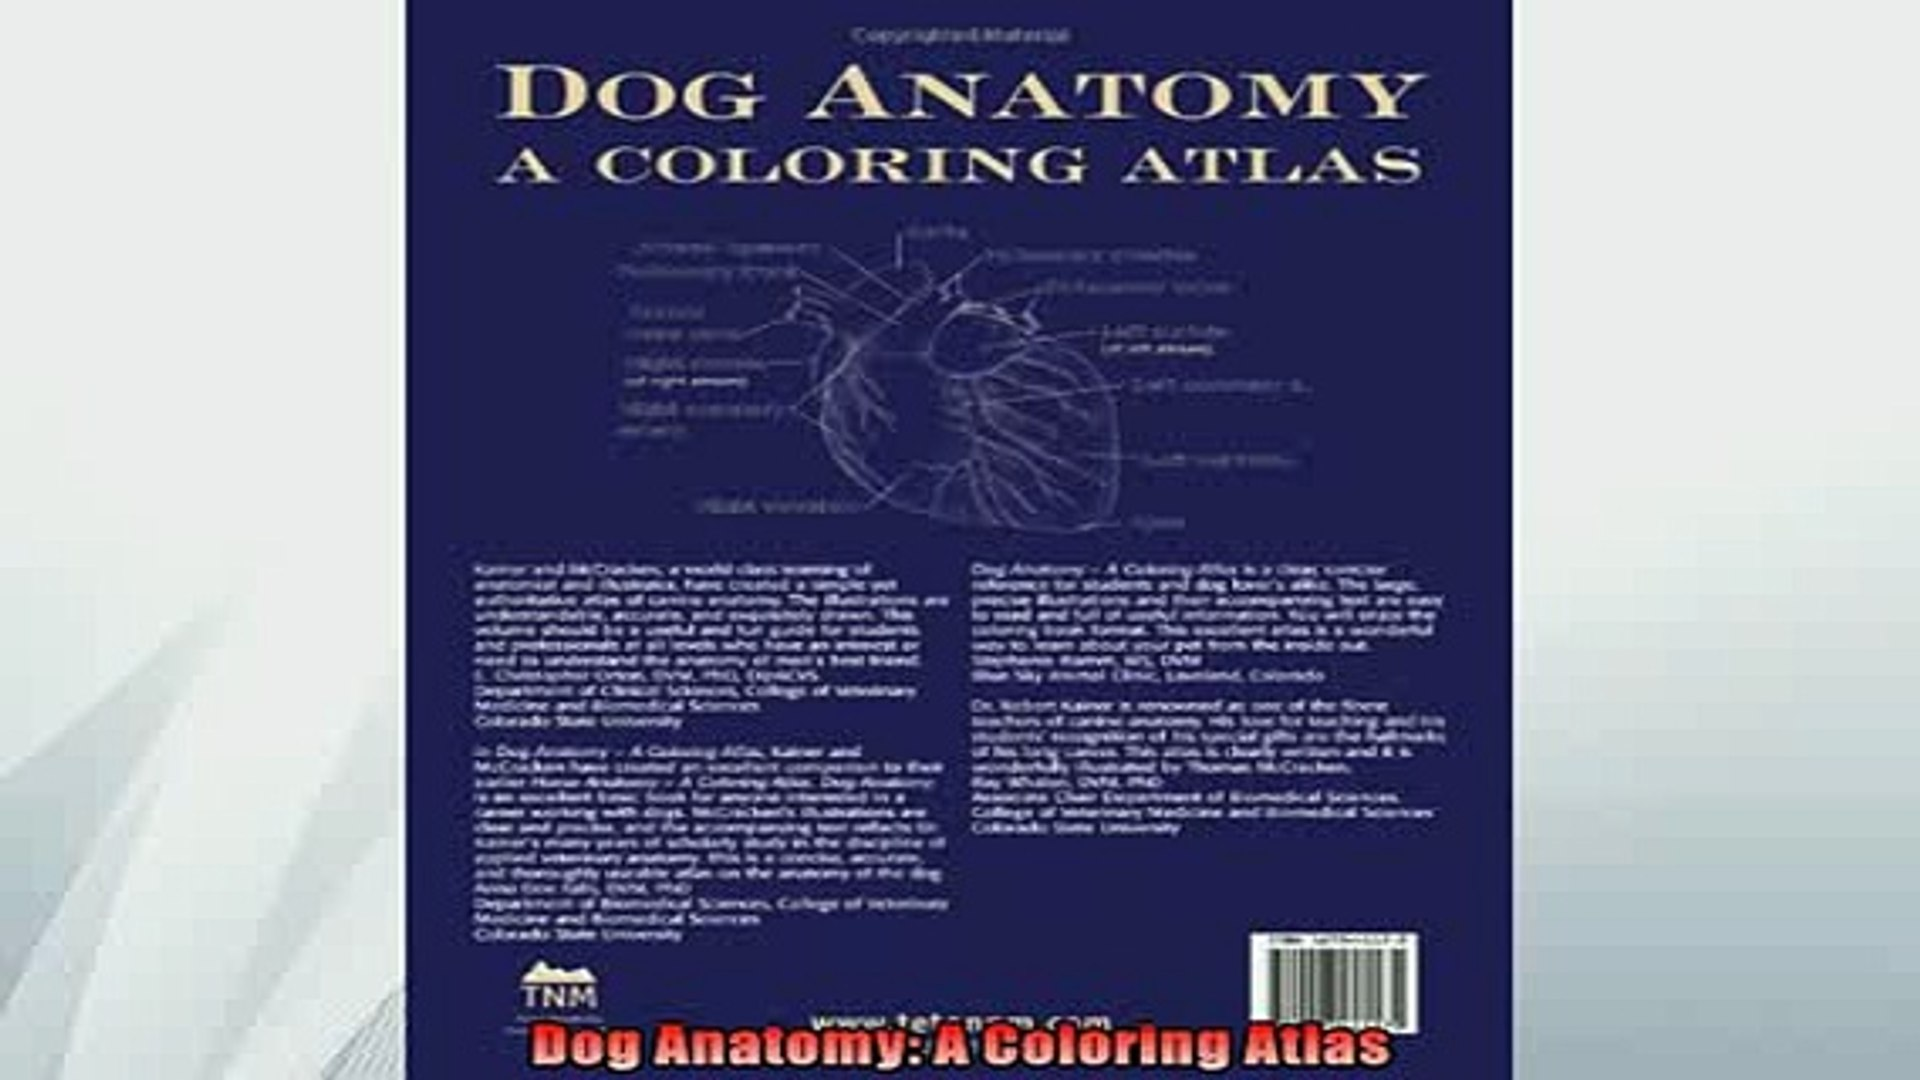 FREE PDF Dog Anatomy A Coloring Atlas READ ONLINE